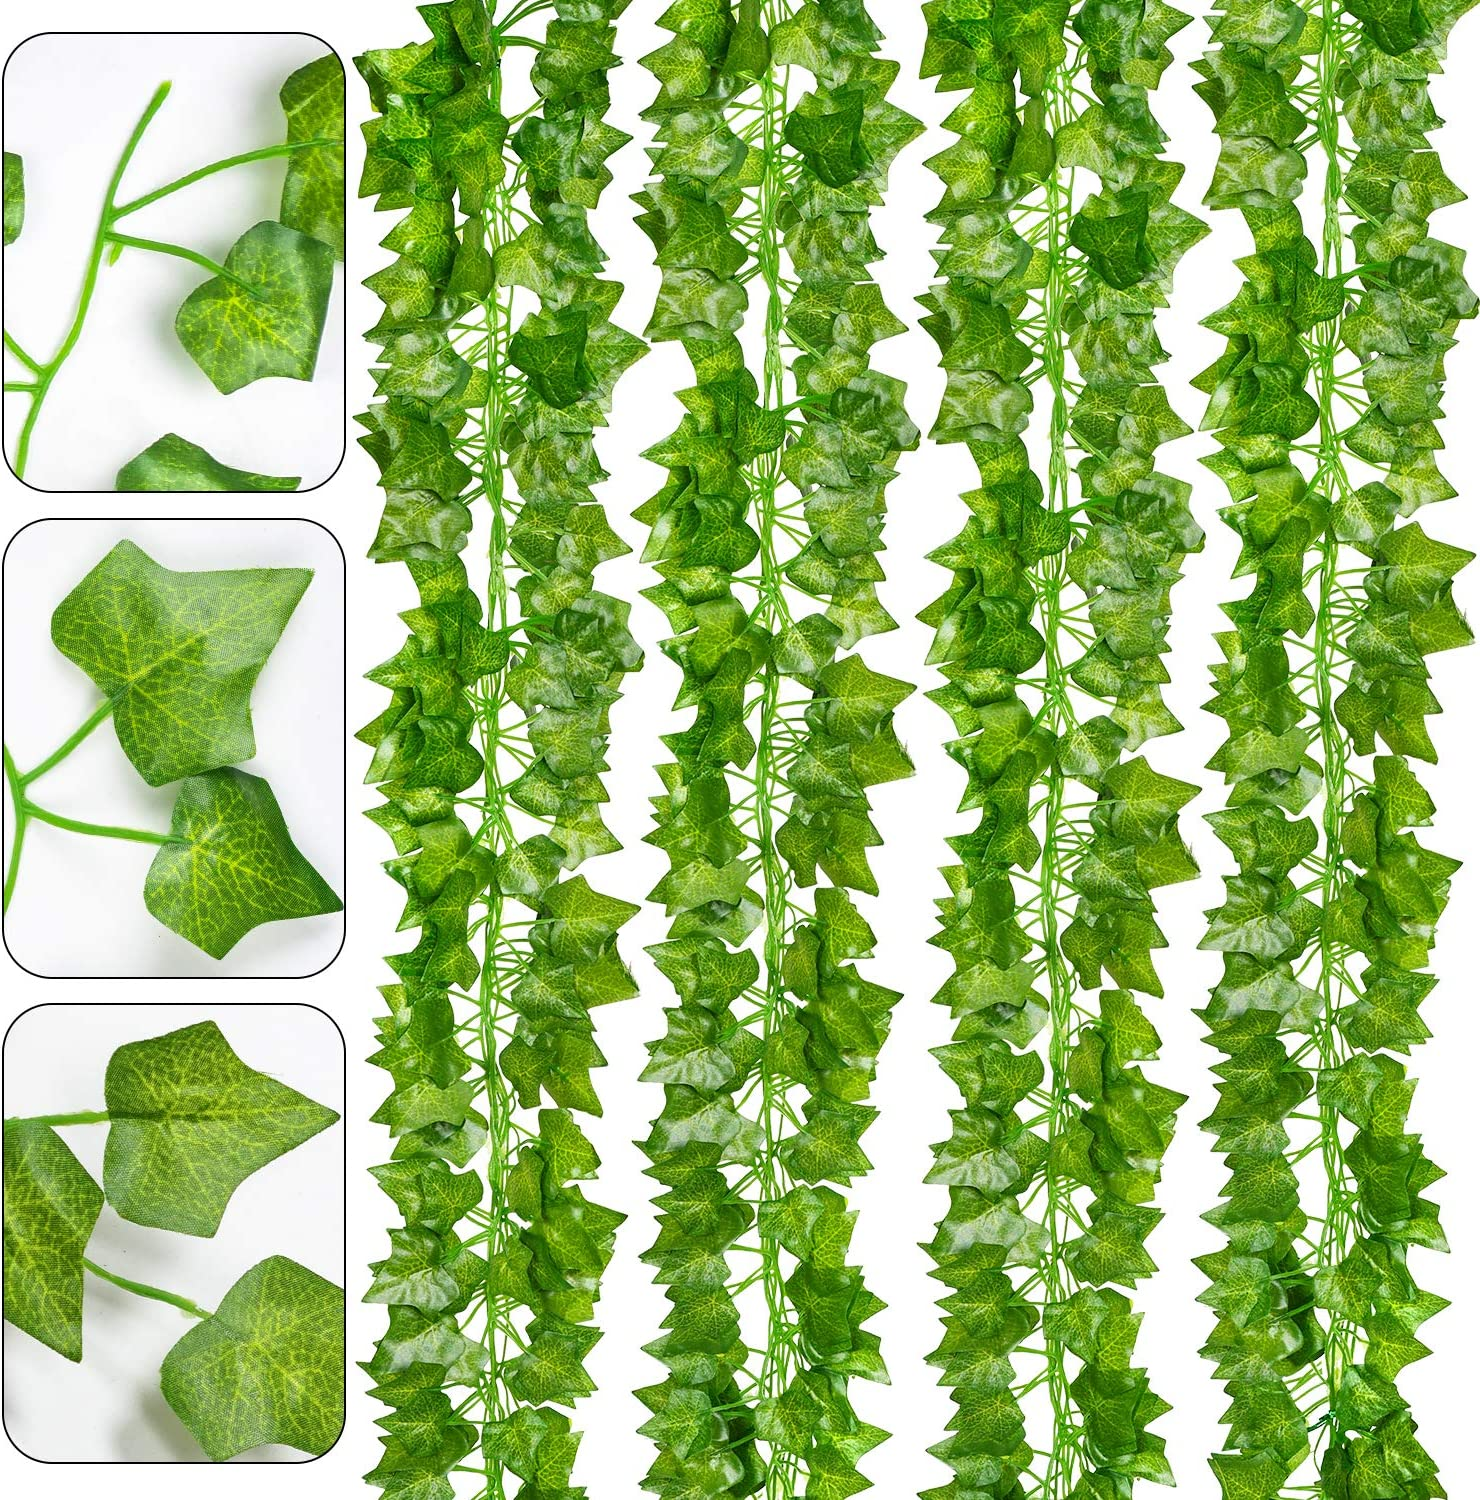 DearHouse 16 Strands Artificial Ivy Leaf Plants Vine Hanging Garland Fake Foliage Flowers Home Kitchen Garden Office Wedding Wall Decor, 112 Feet